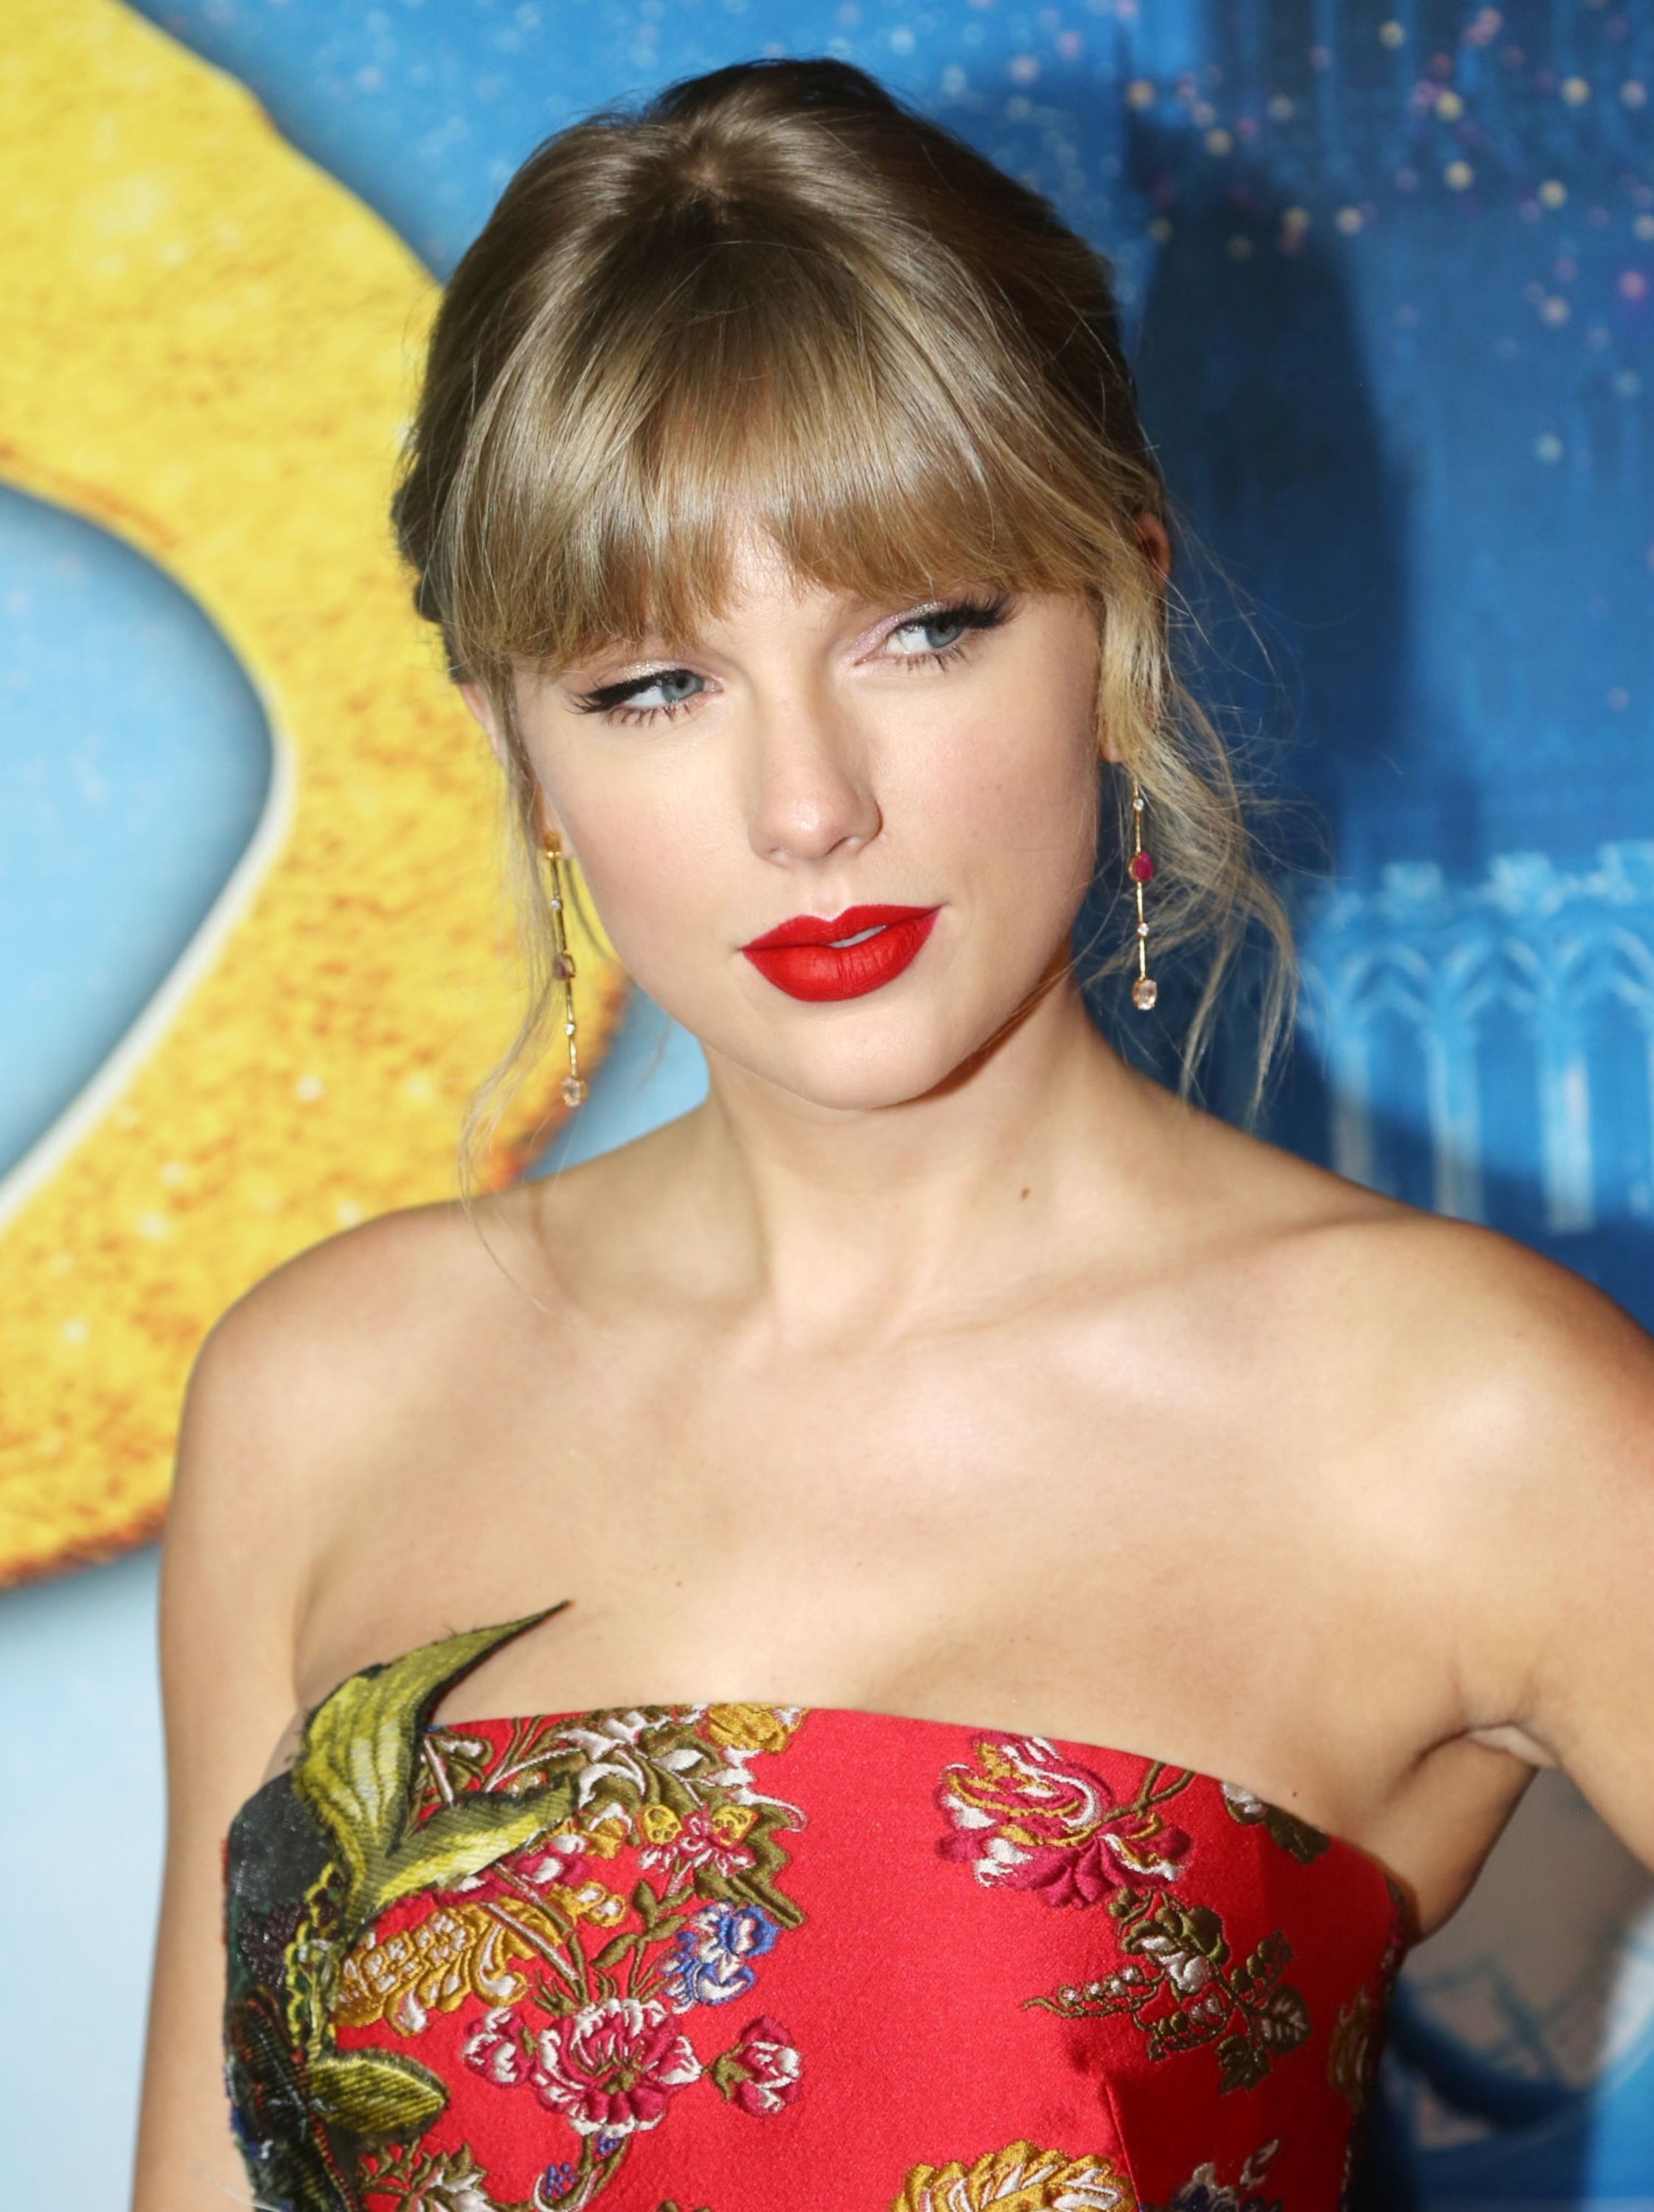 118.jpg Click image to close this window Taylor swift